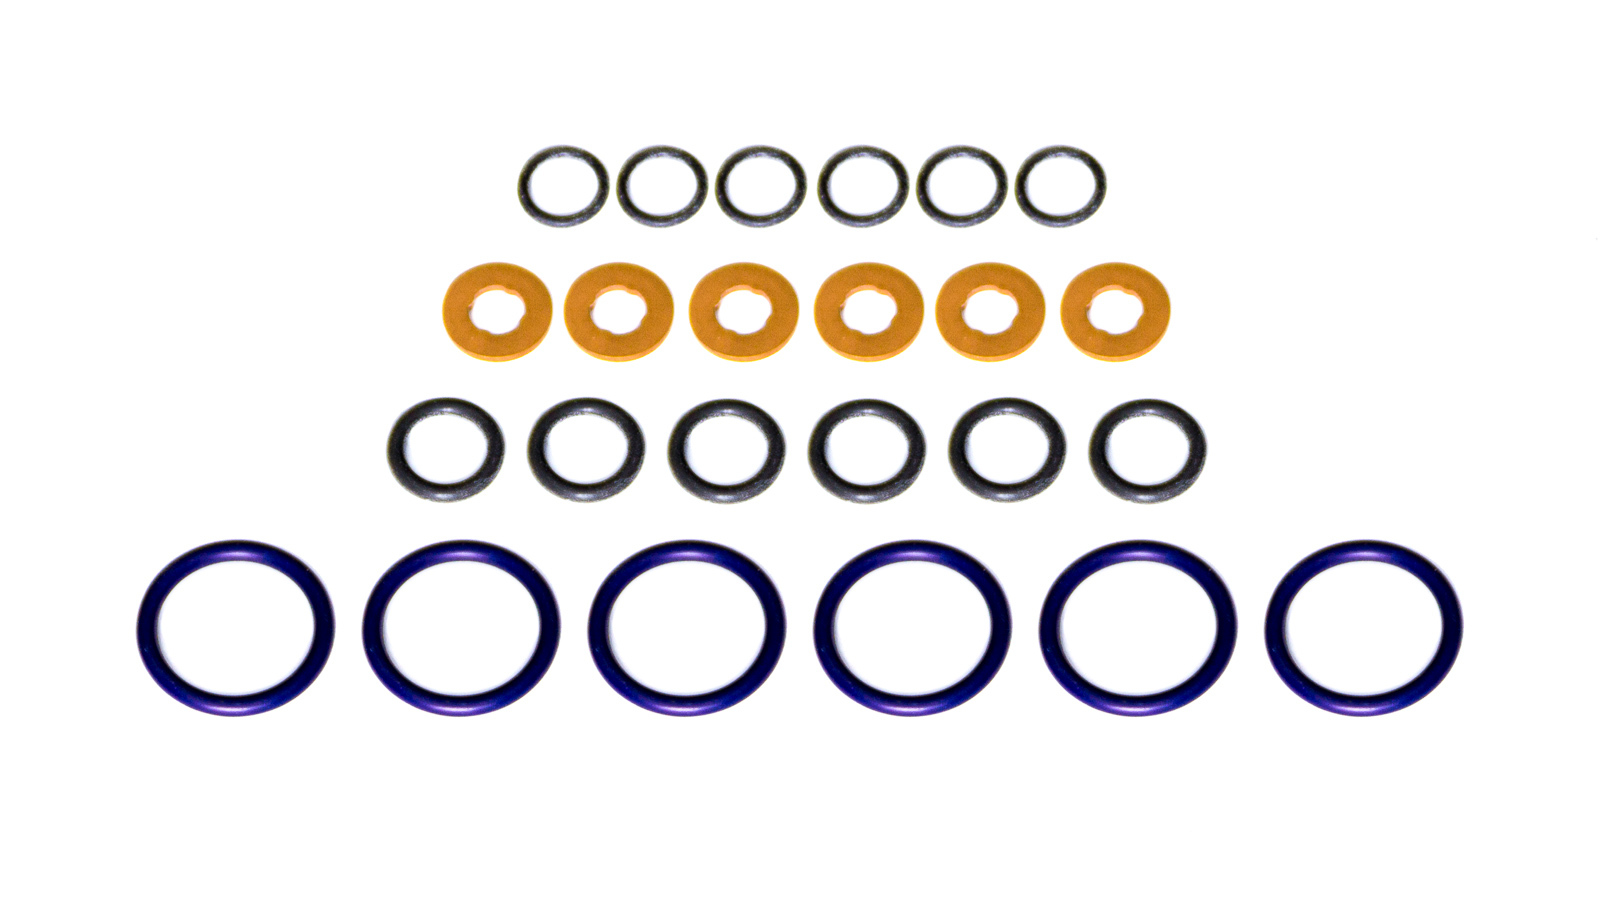 Cometic Gaskets C15072 O-Ring, Washers Included, Rubber, Dodge Cummins Fuel Injector Seal, Kit